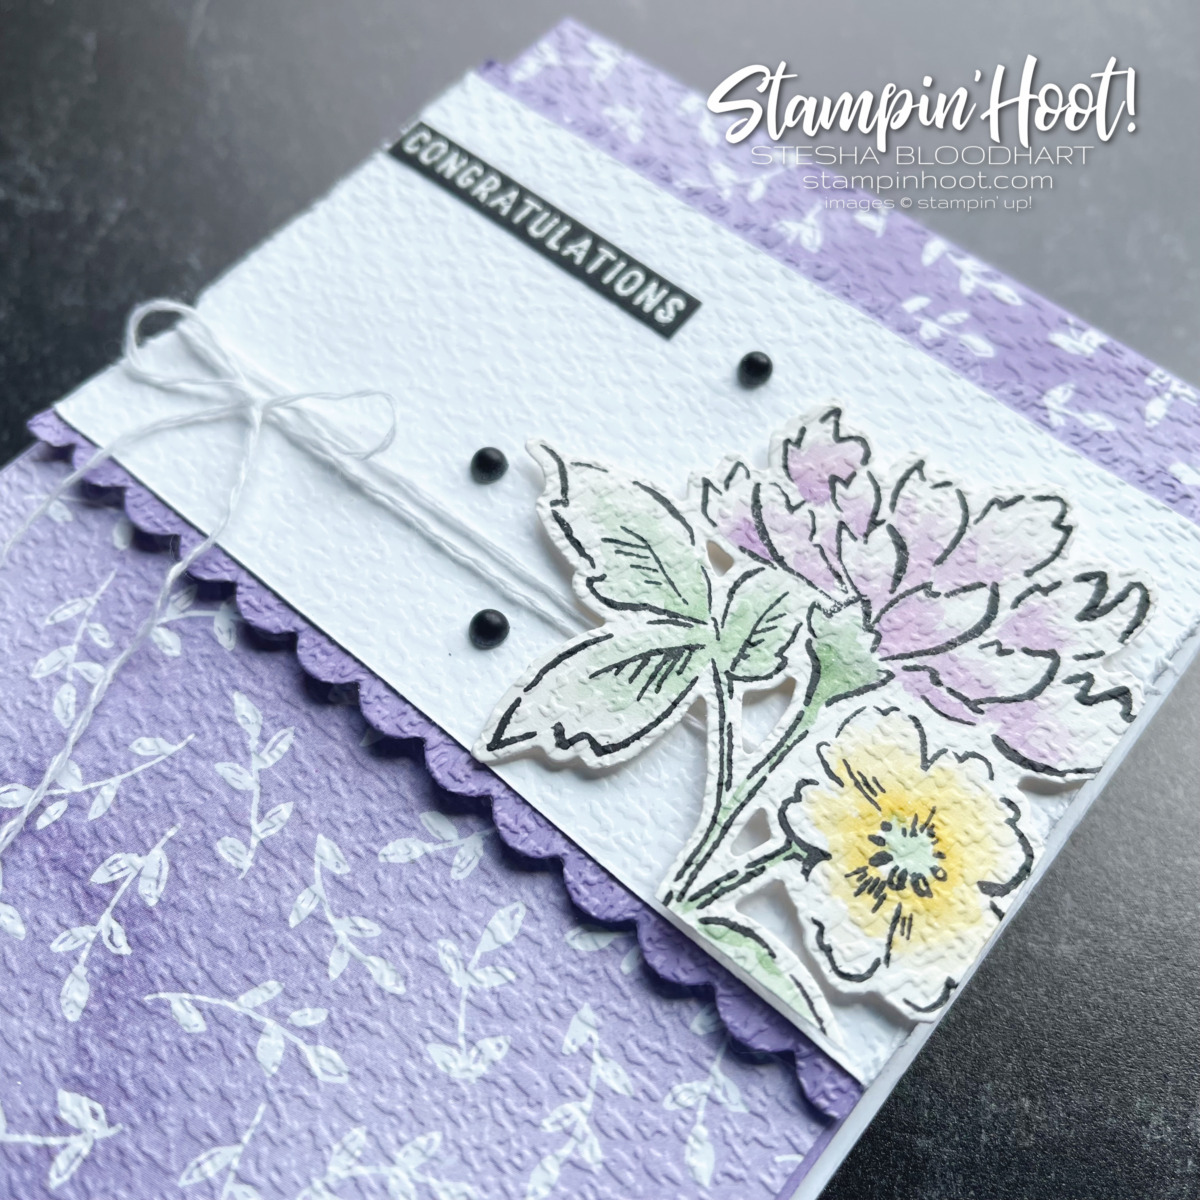 Congratulations card. Hand Penned Suite Collection Stampin' Up! Stesha Bloodhart, Stampin' Hoot!